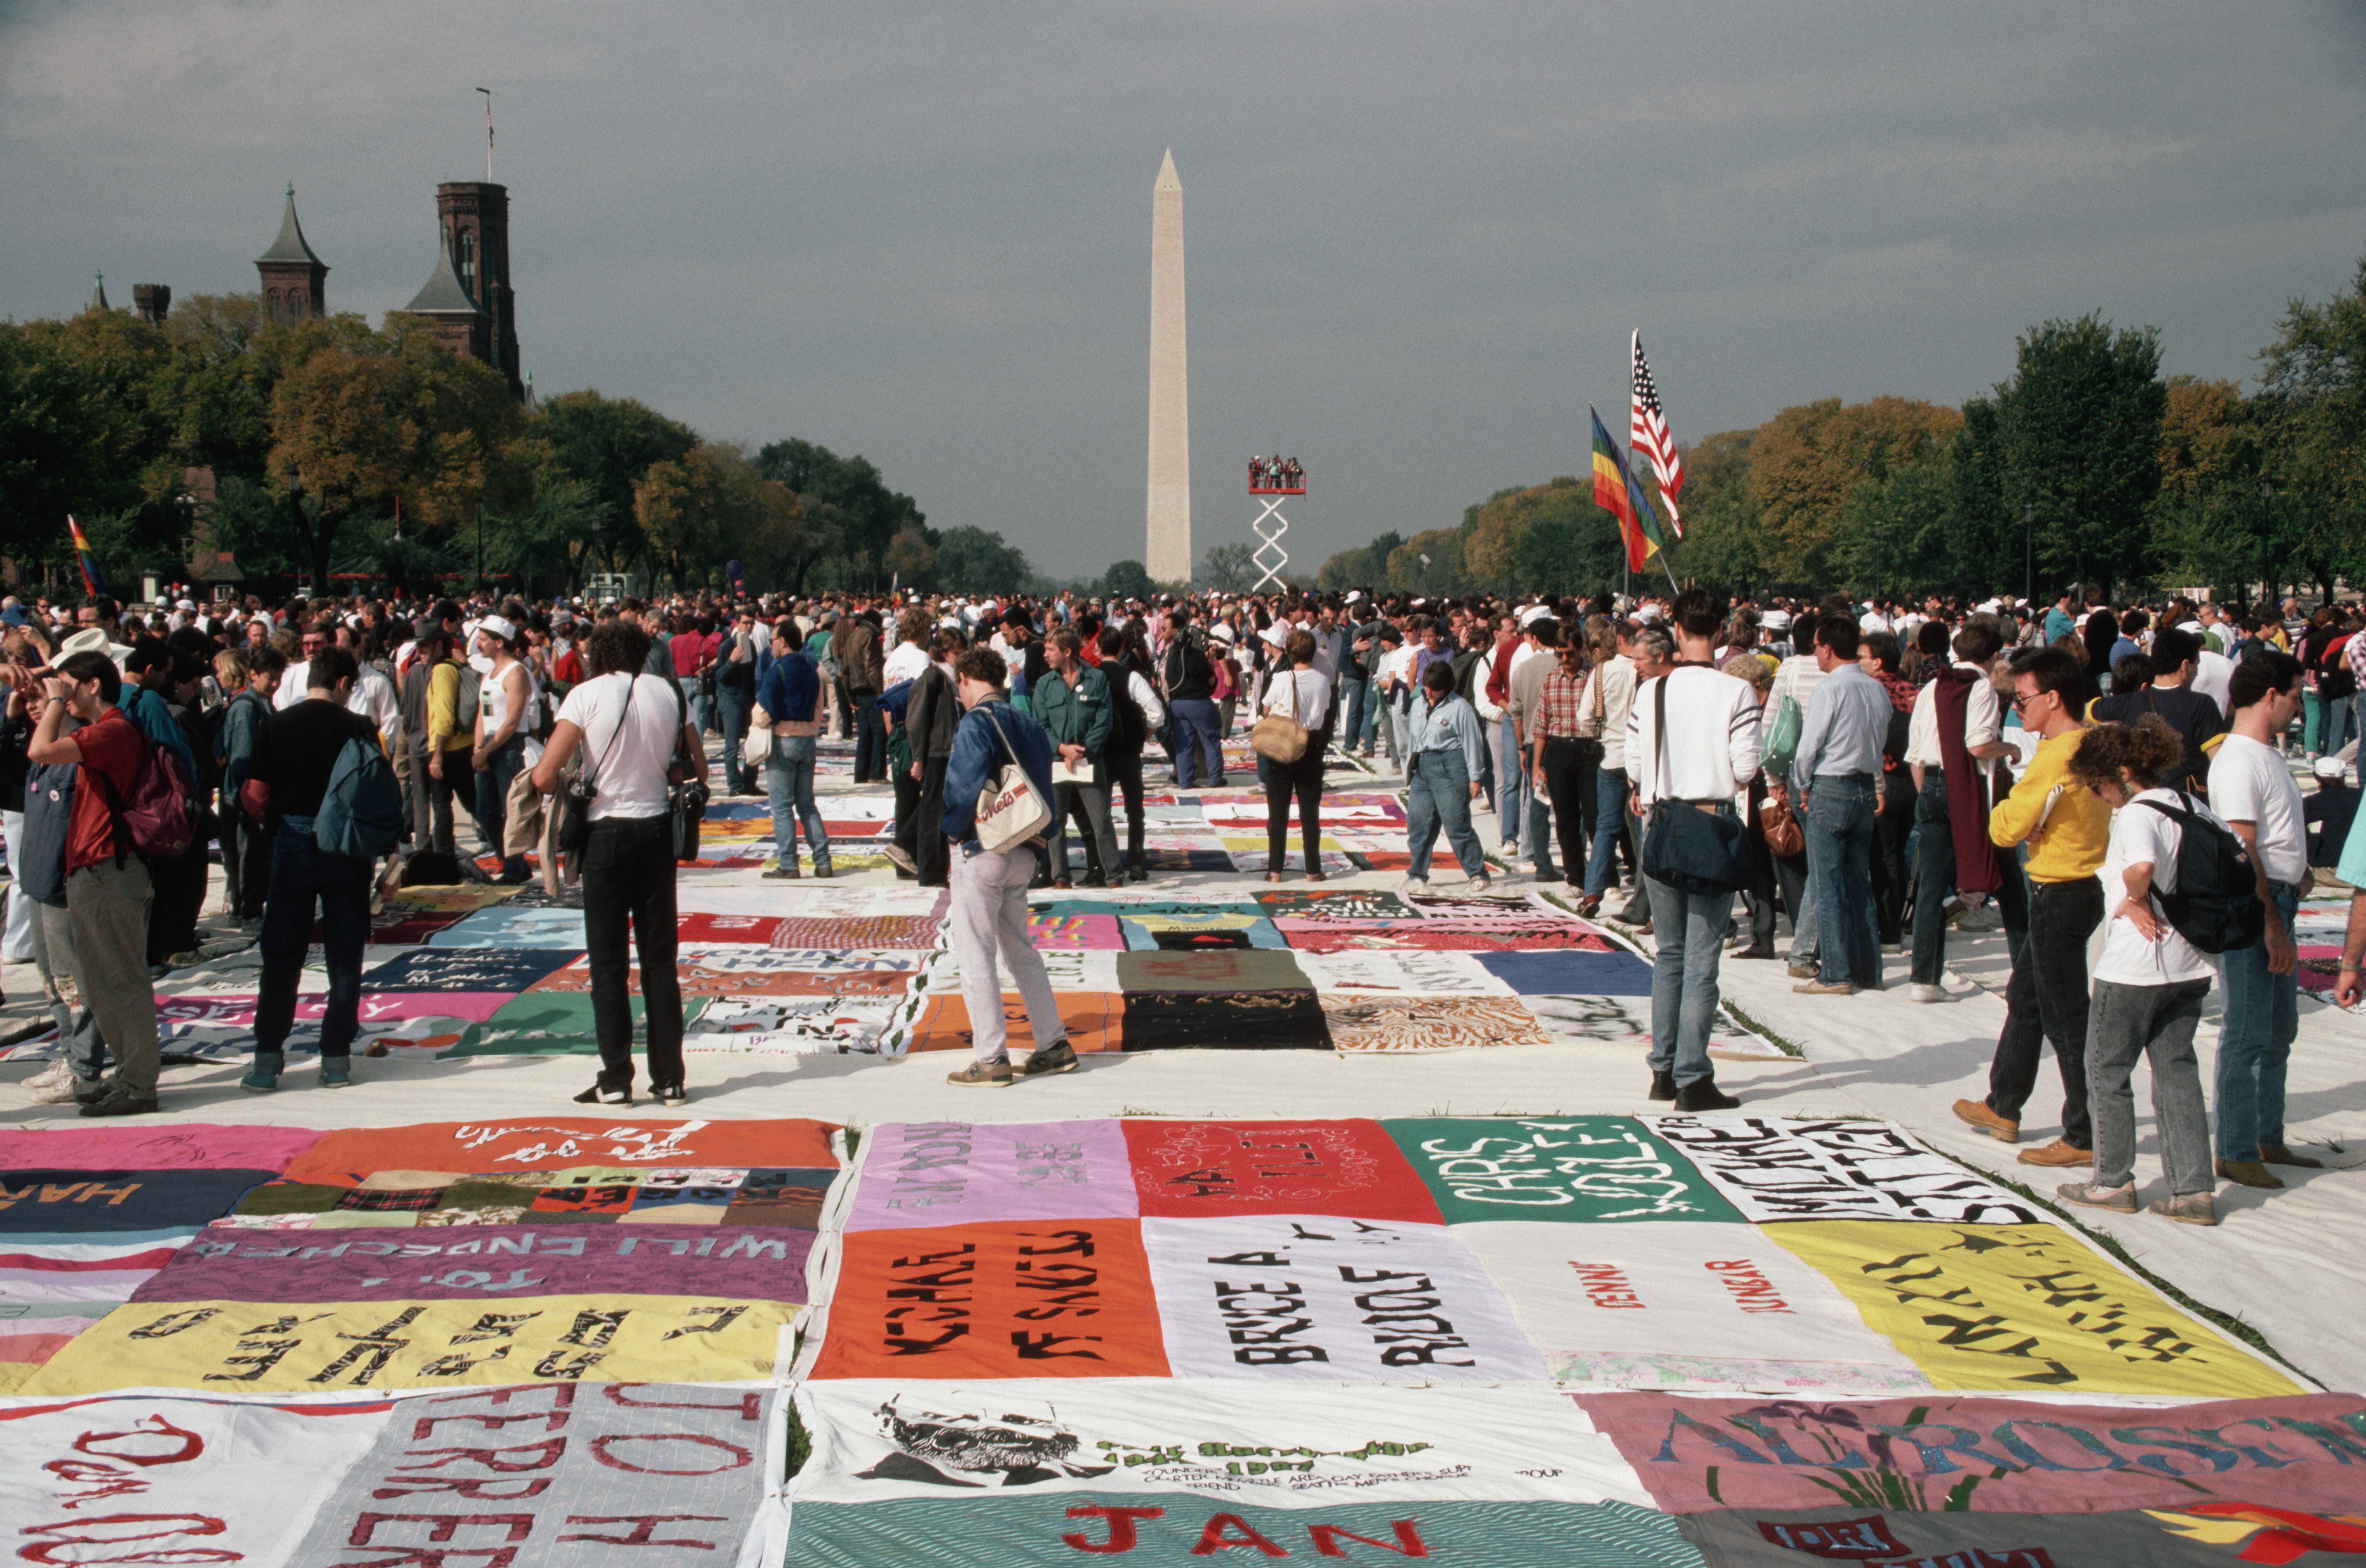 The AIDS Memorial Quilt is shown for the first time on the Mall in Washington DC, circa October 1987.